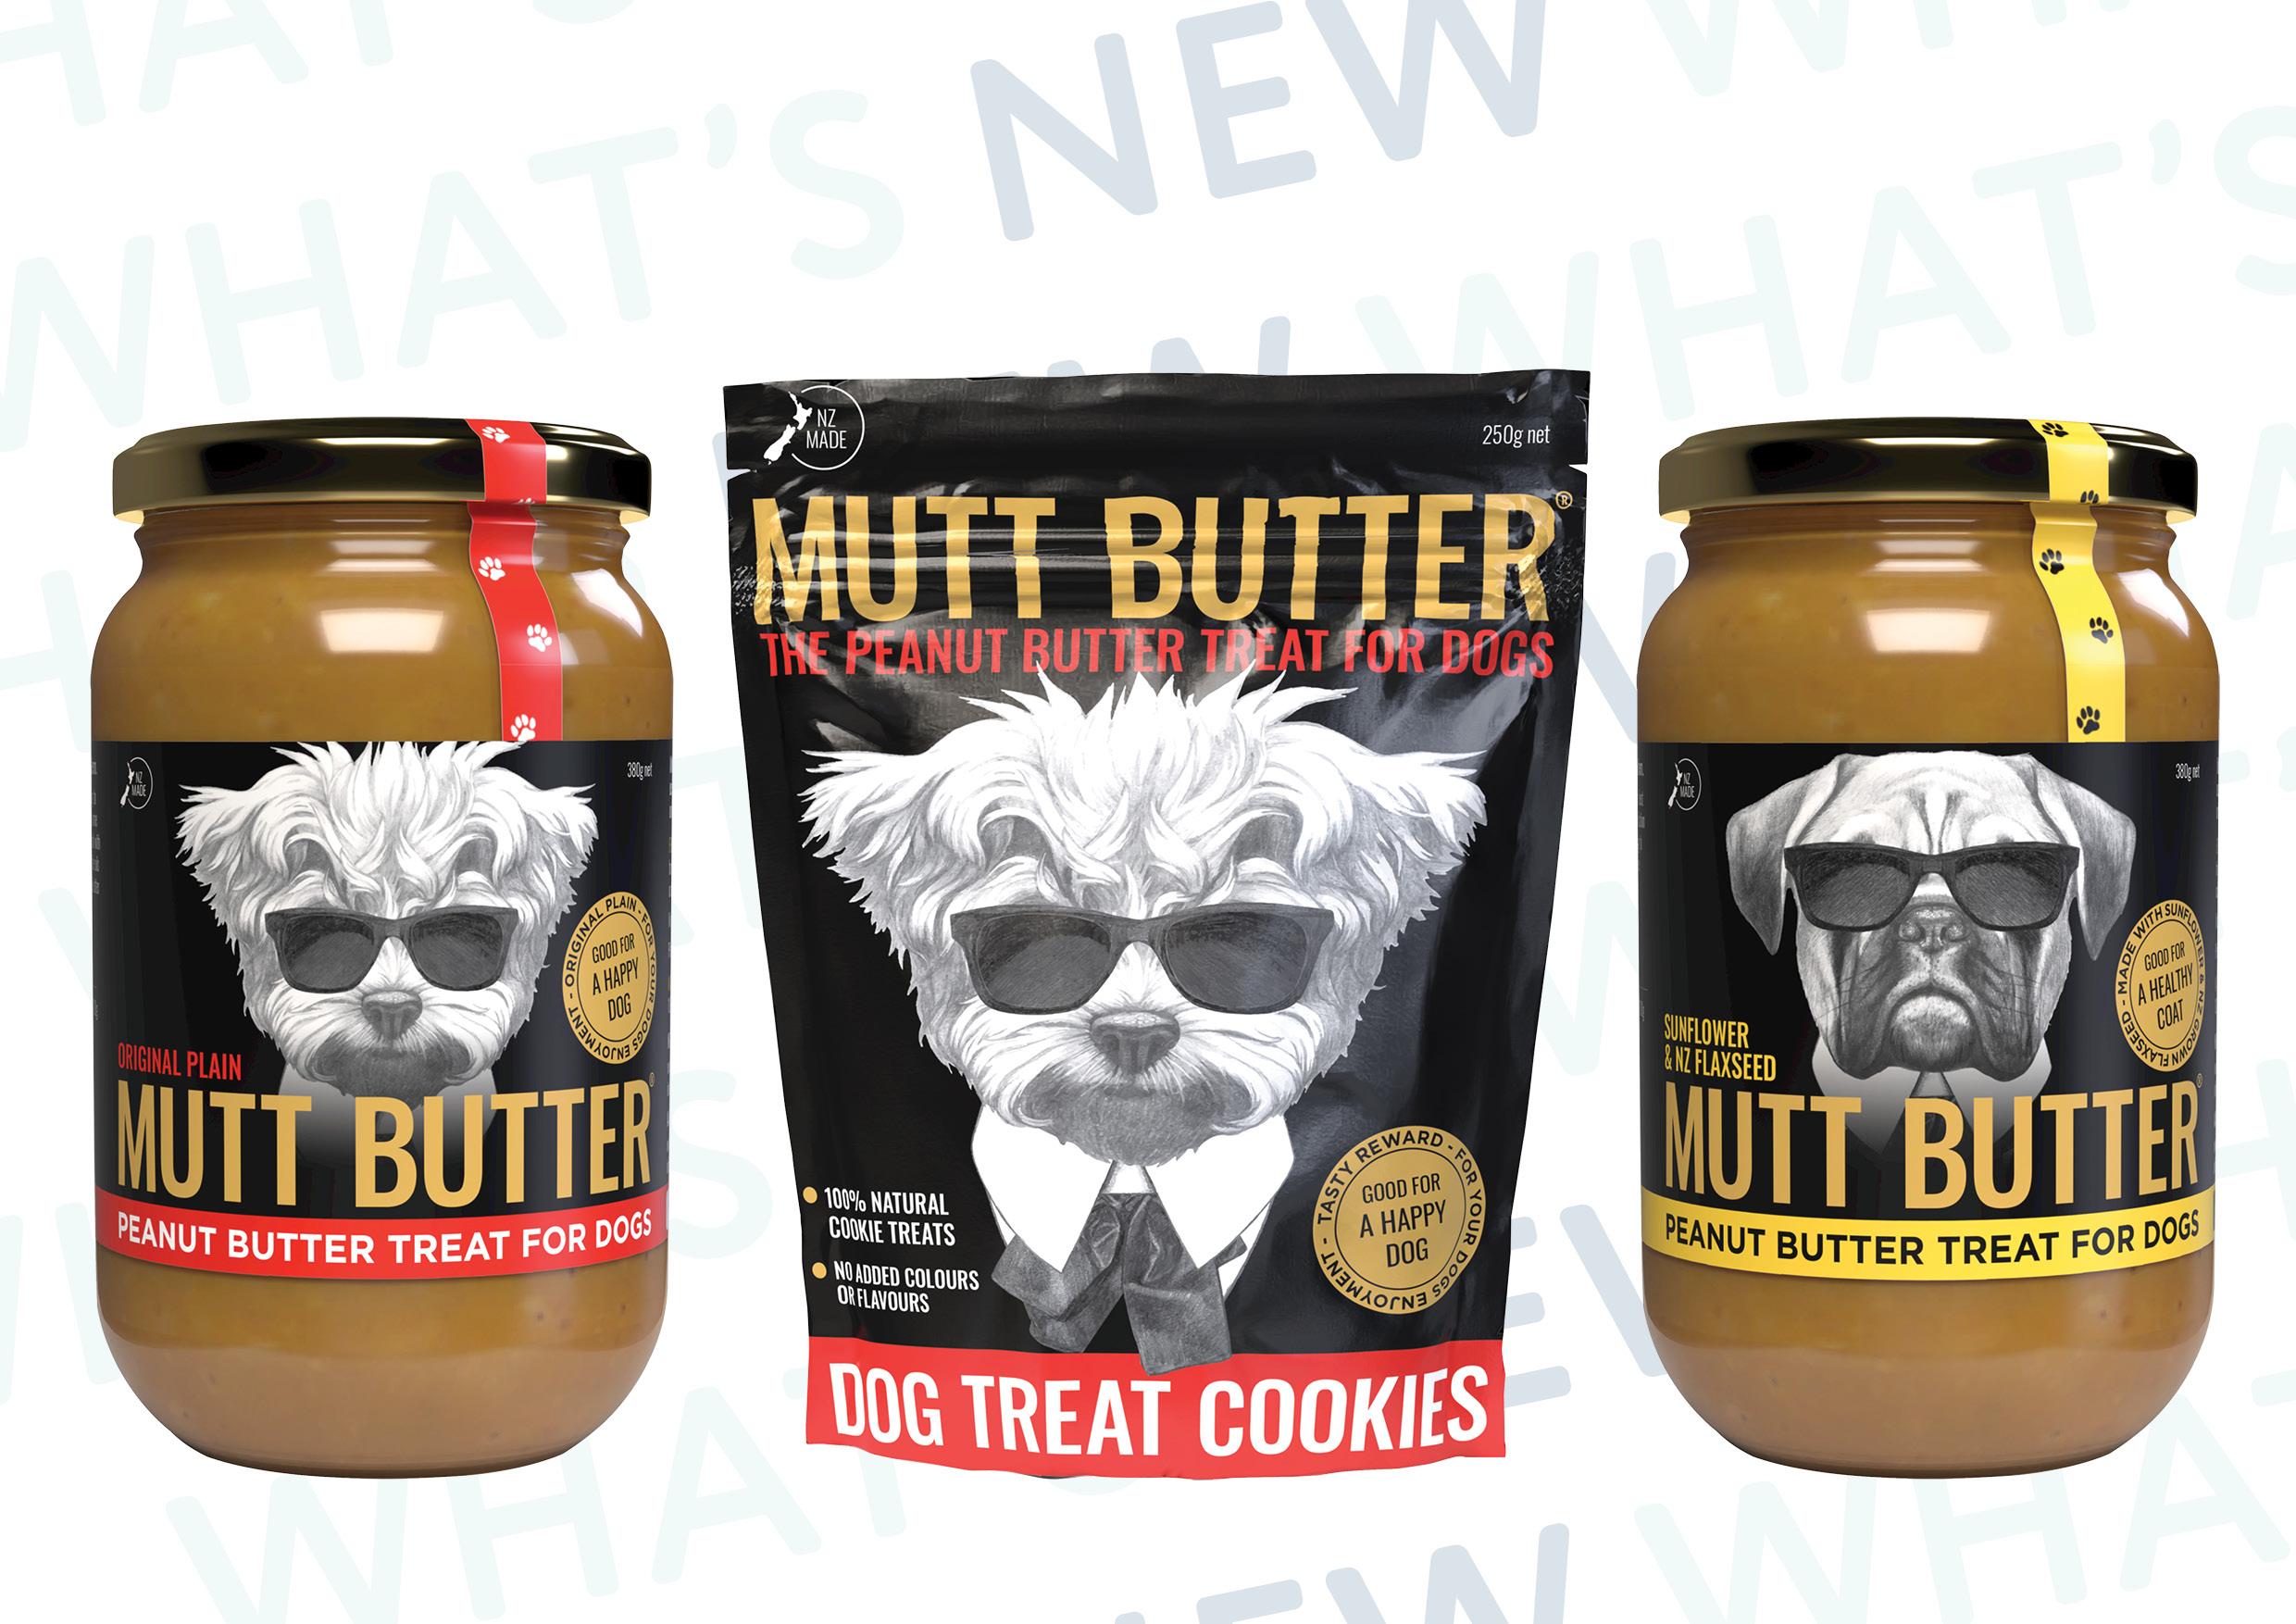 Dogs Go Nuts for Mutt Butter